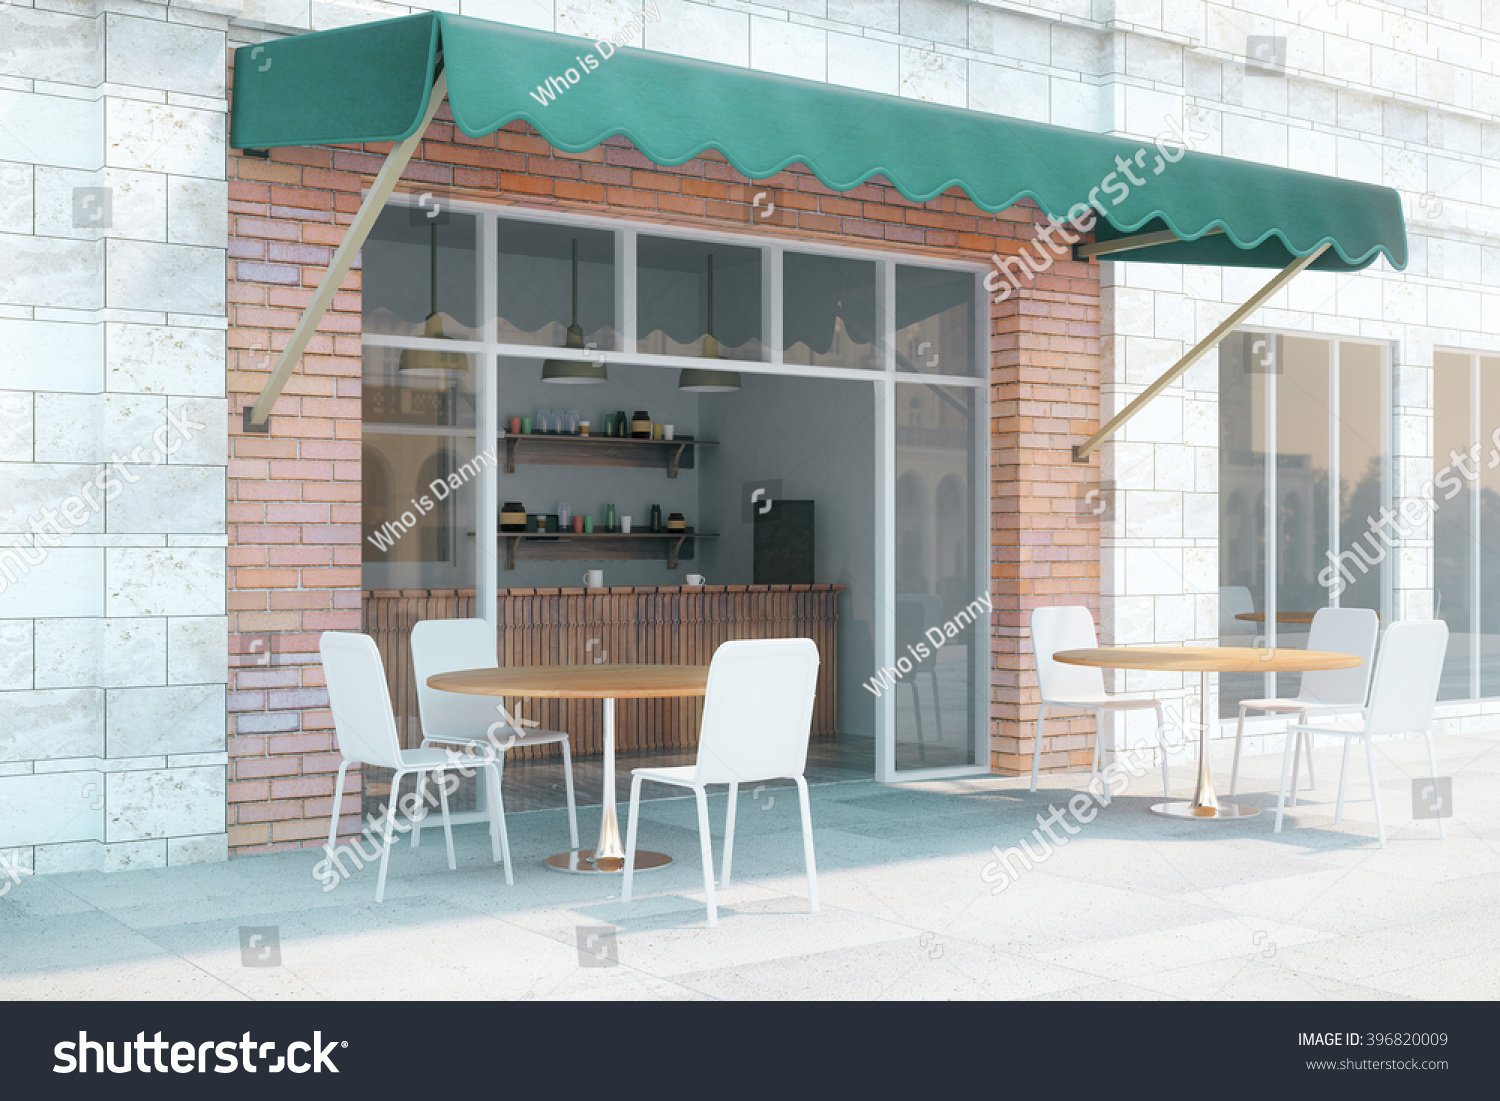 Small cafe brick walls green canopy stock photo 396820009 for Cafe exterior design